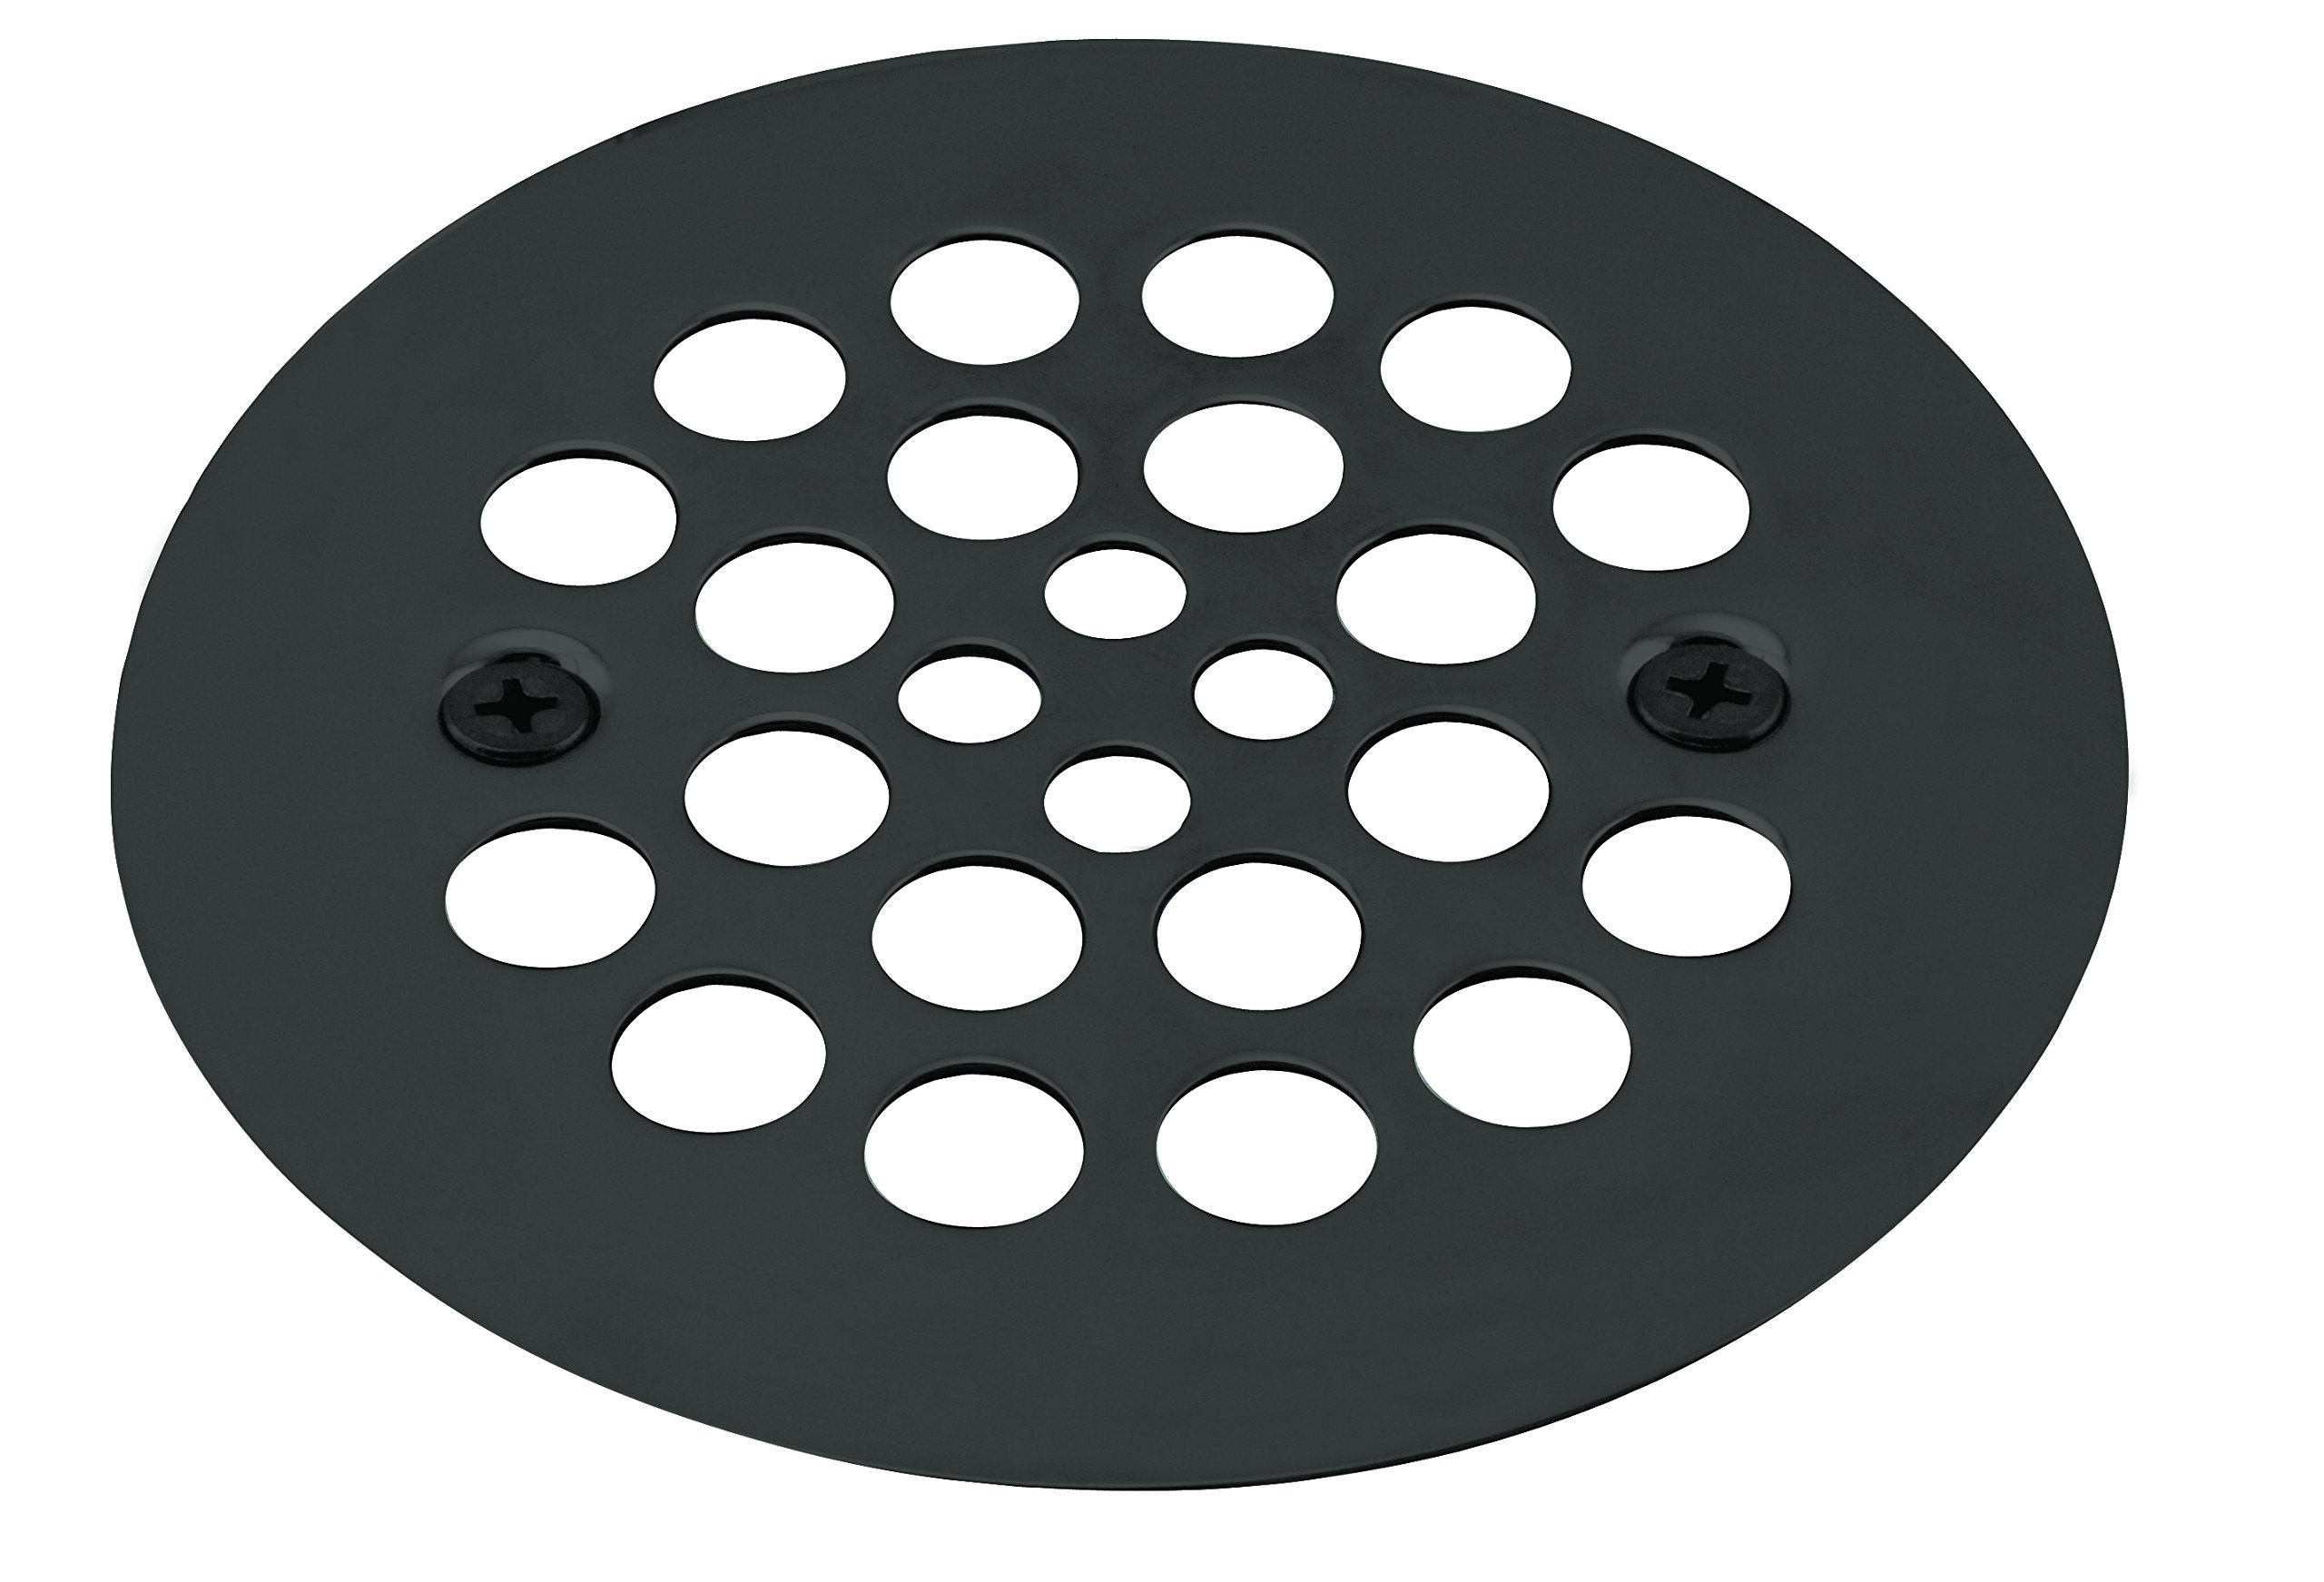 Westbrass 4-1/4'' O.D. Shower Strainer Plastic-Oddities Style, Matte Black, D3193-62